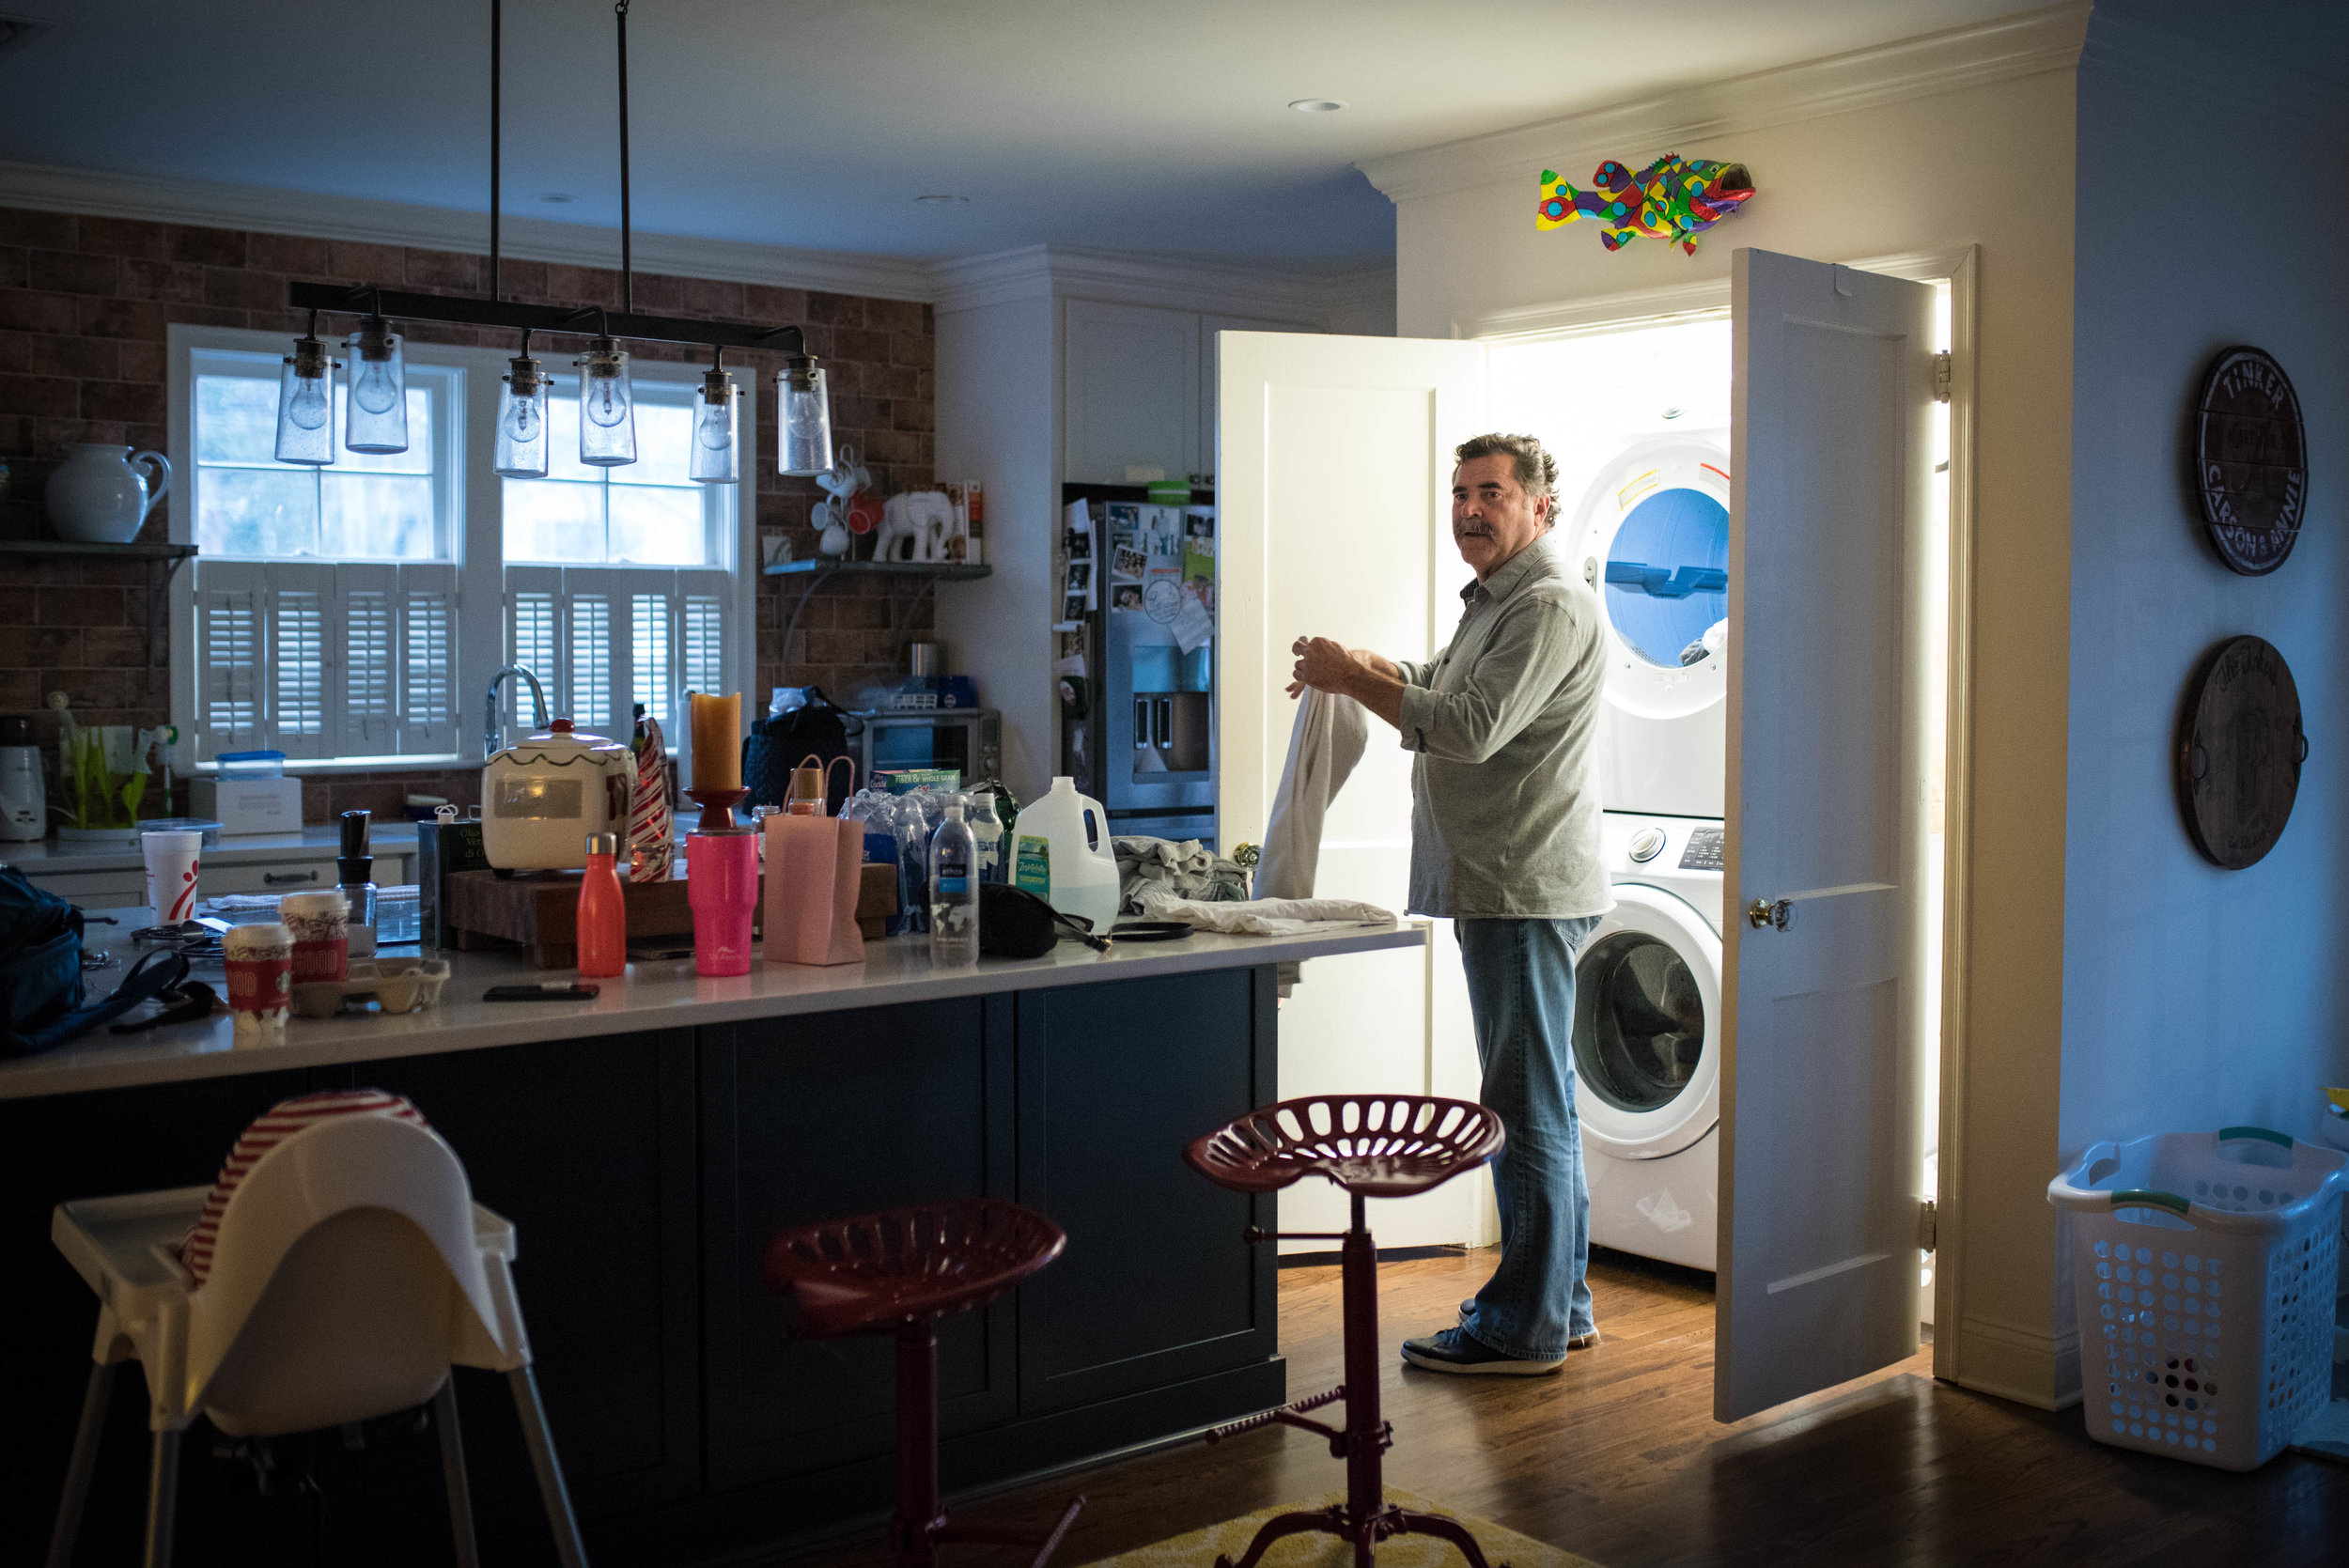 Grandpa looks on and folds laundry while his daughter labors at home.